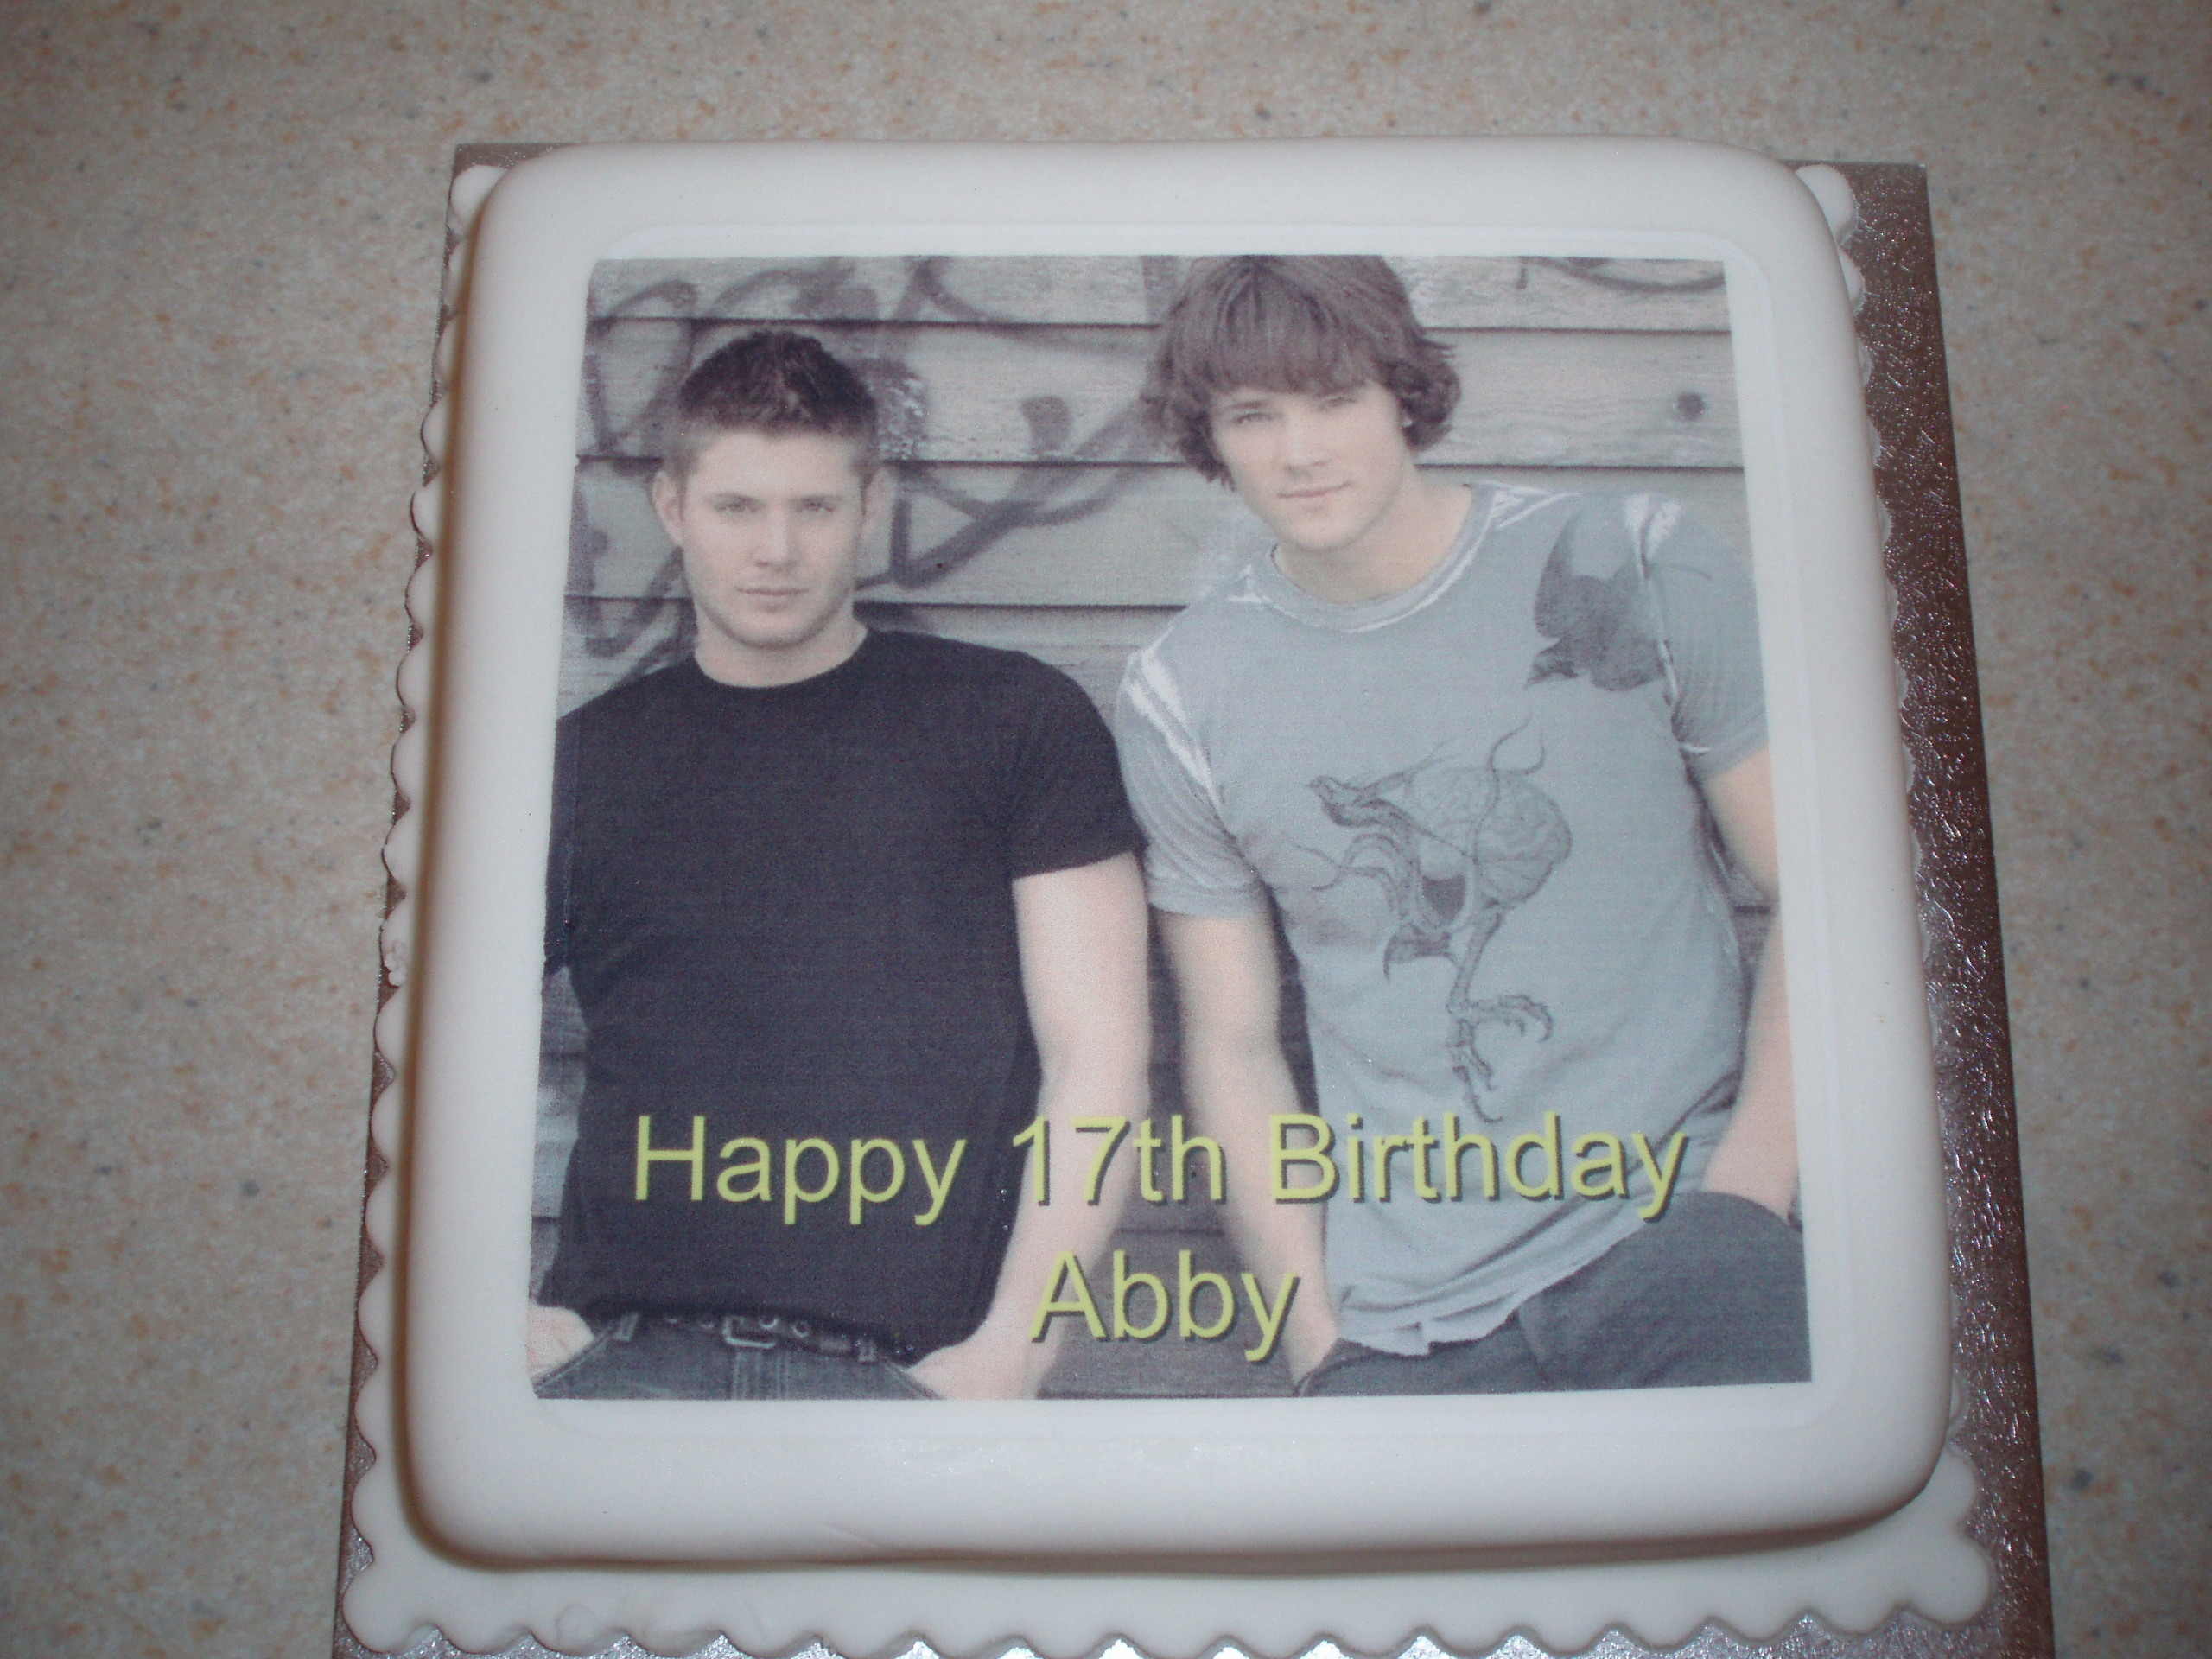 Supernatural Images My 17th Birthday Cakee